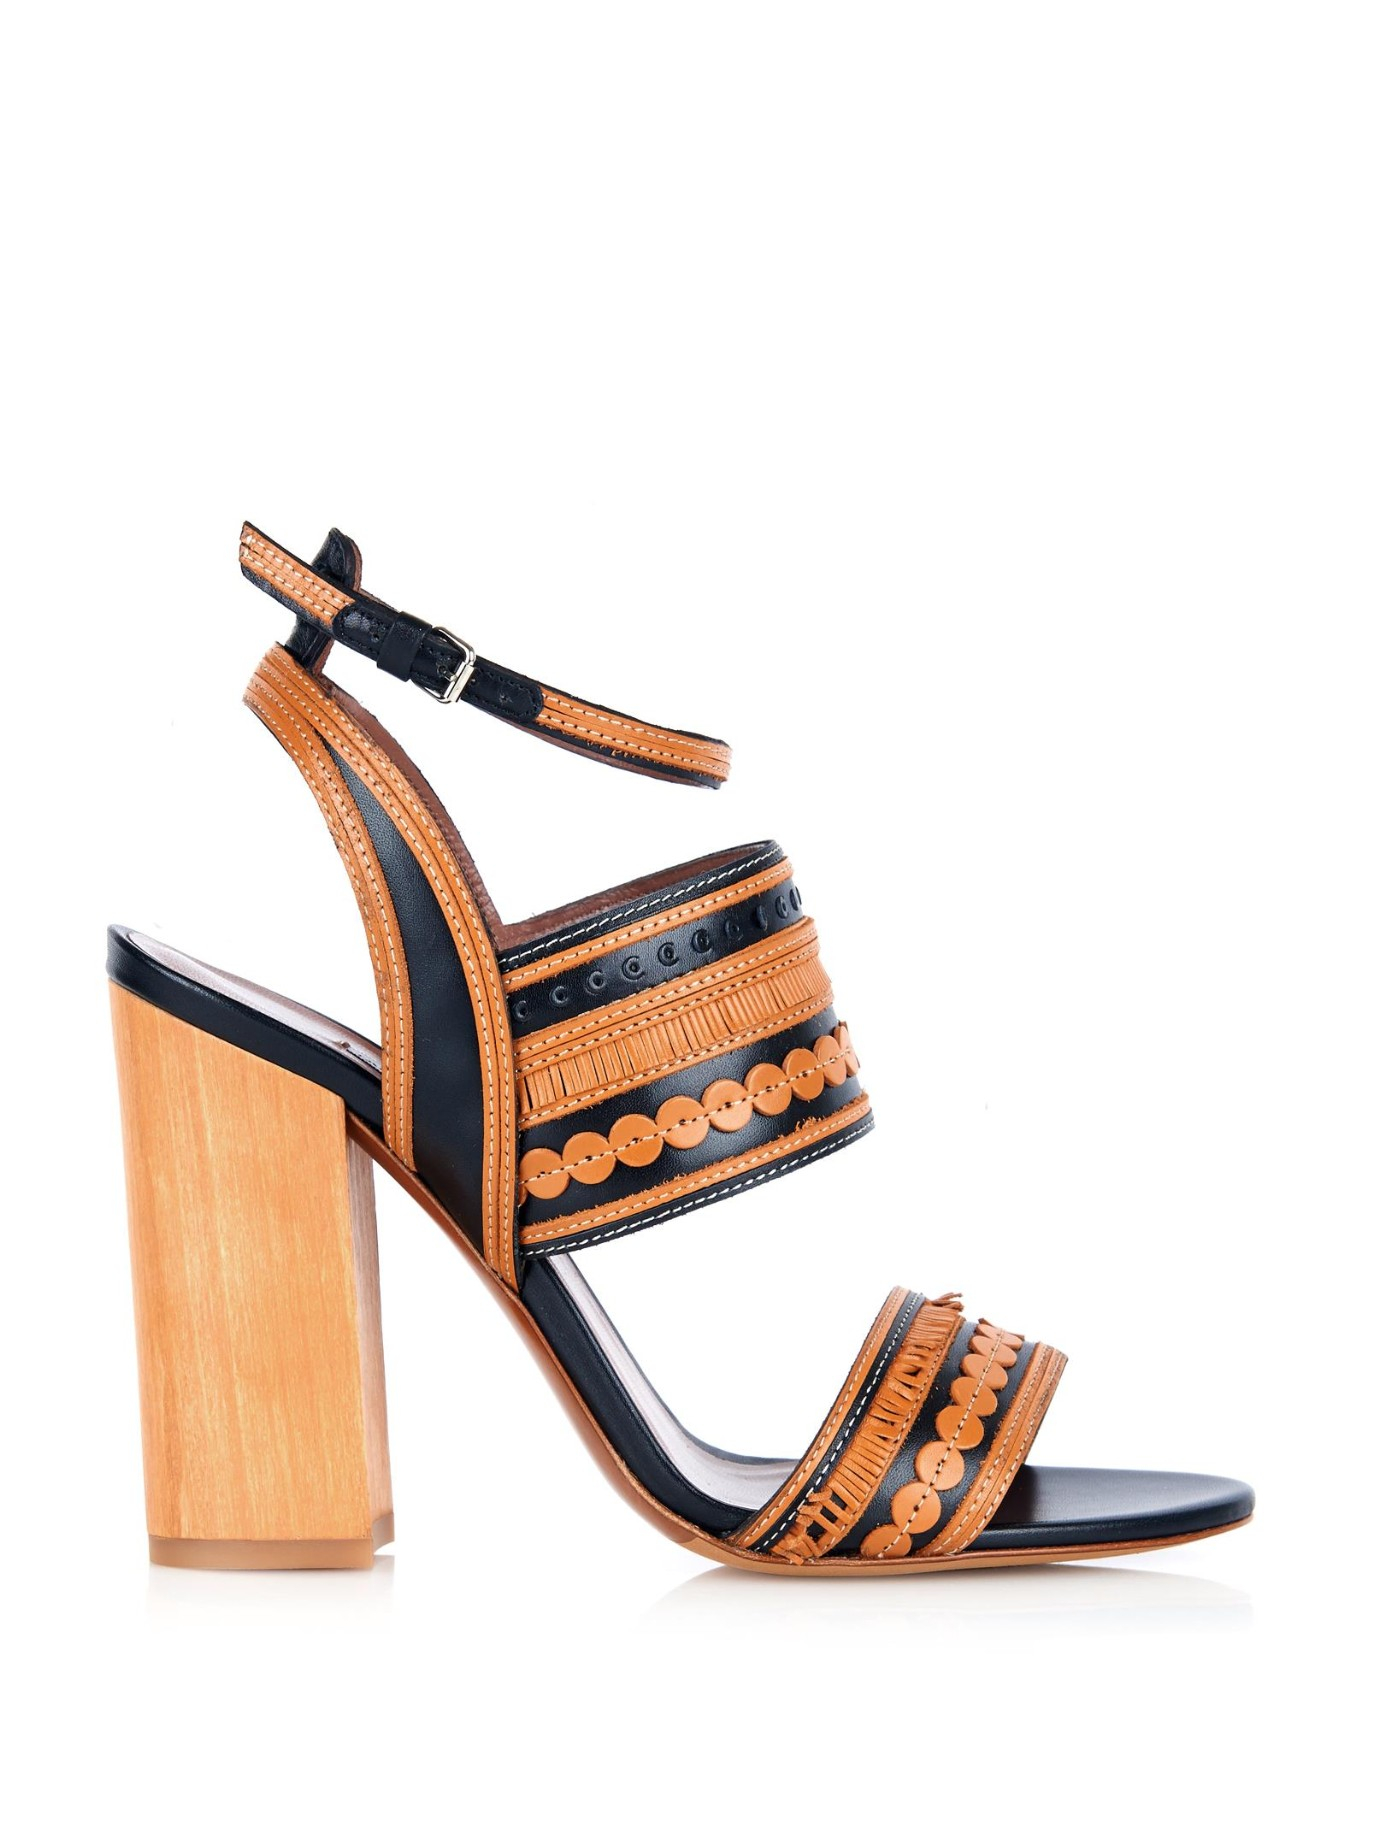 8c06e132d Tabitha Simmons Shaewood Block-Heel Leather Sandals in Black - Lyst